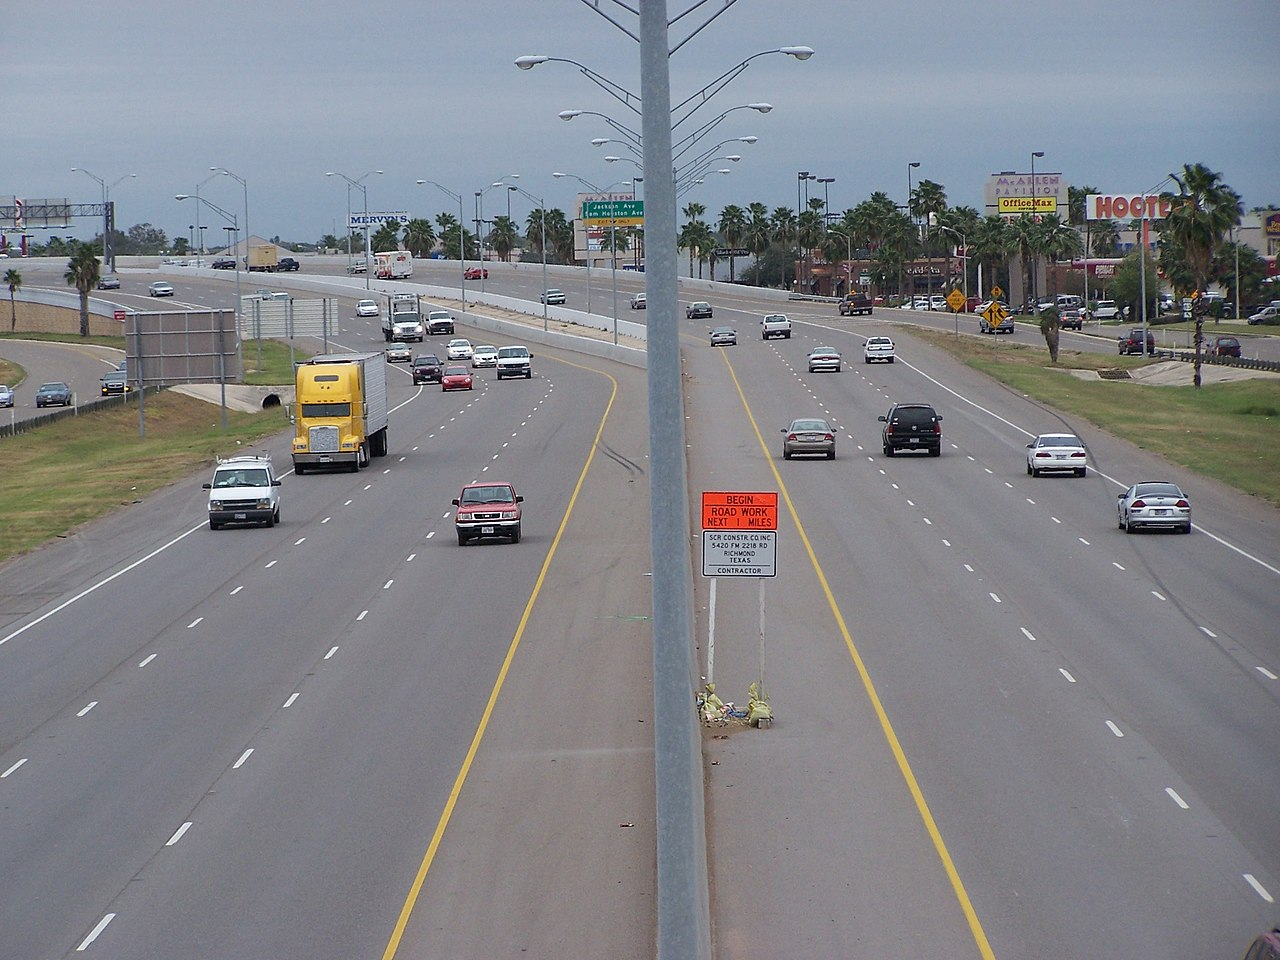 https://upload.wikimedia.org/wikipedia/commons/thumb/2/25/US_Highway_83_in_McAllen,_Texas.jpg/1280px-US_Highway_83_in_McAllen,_Texas.jpg